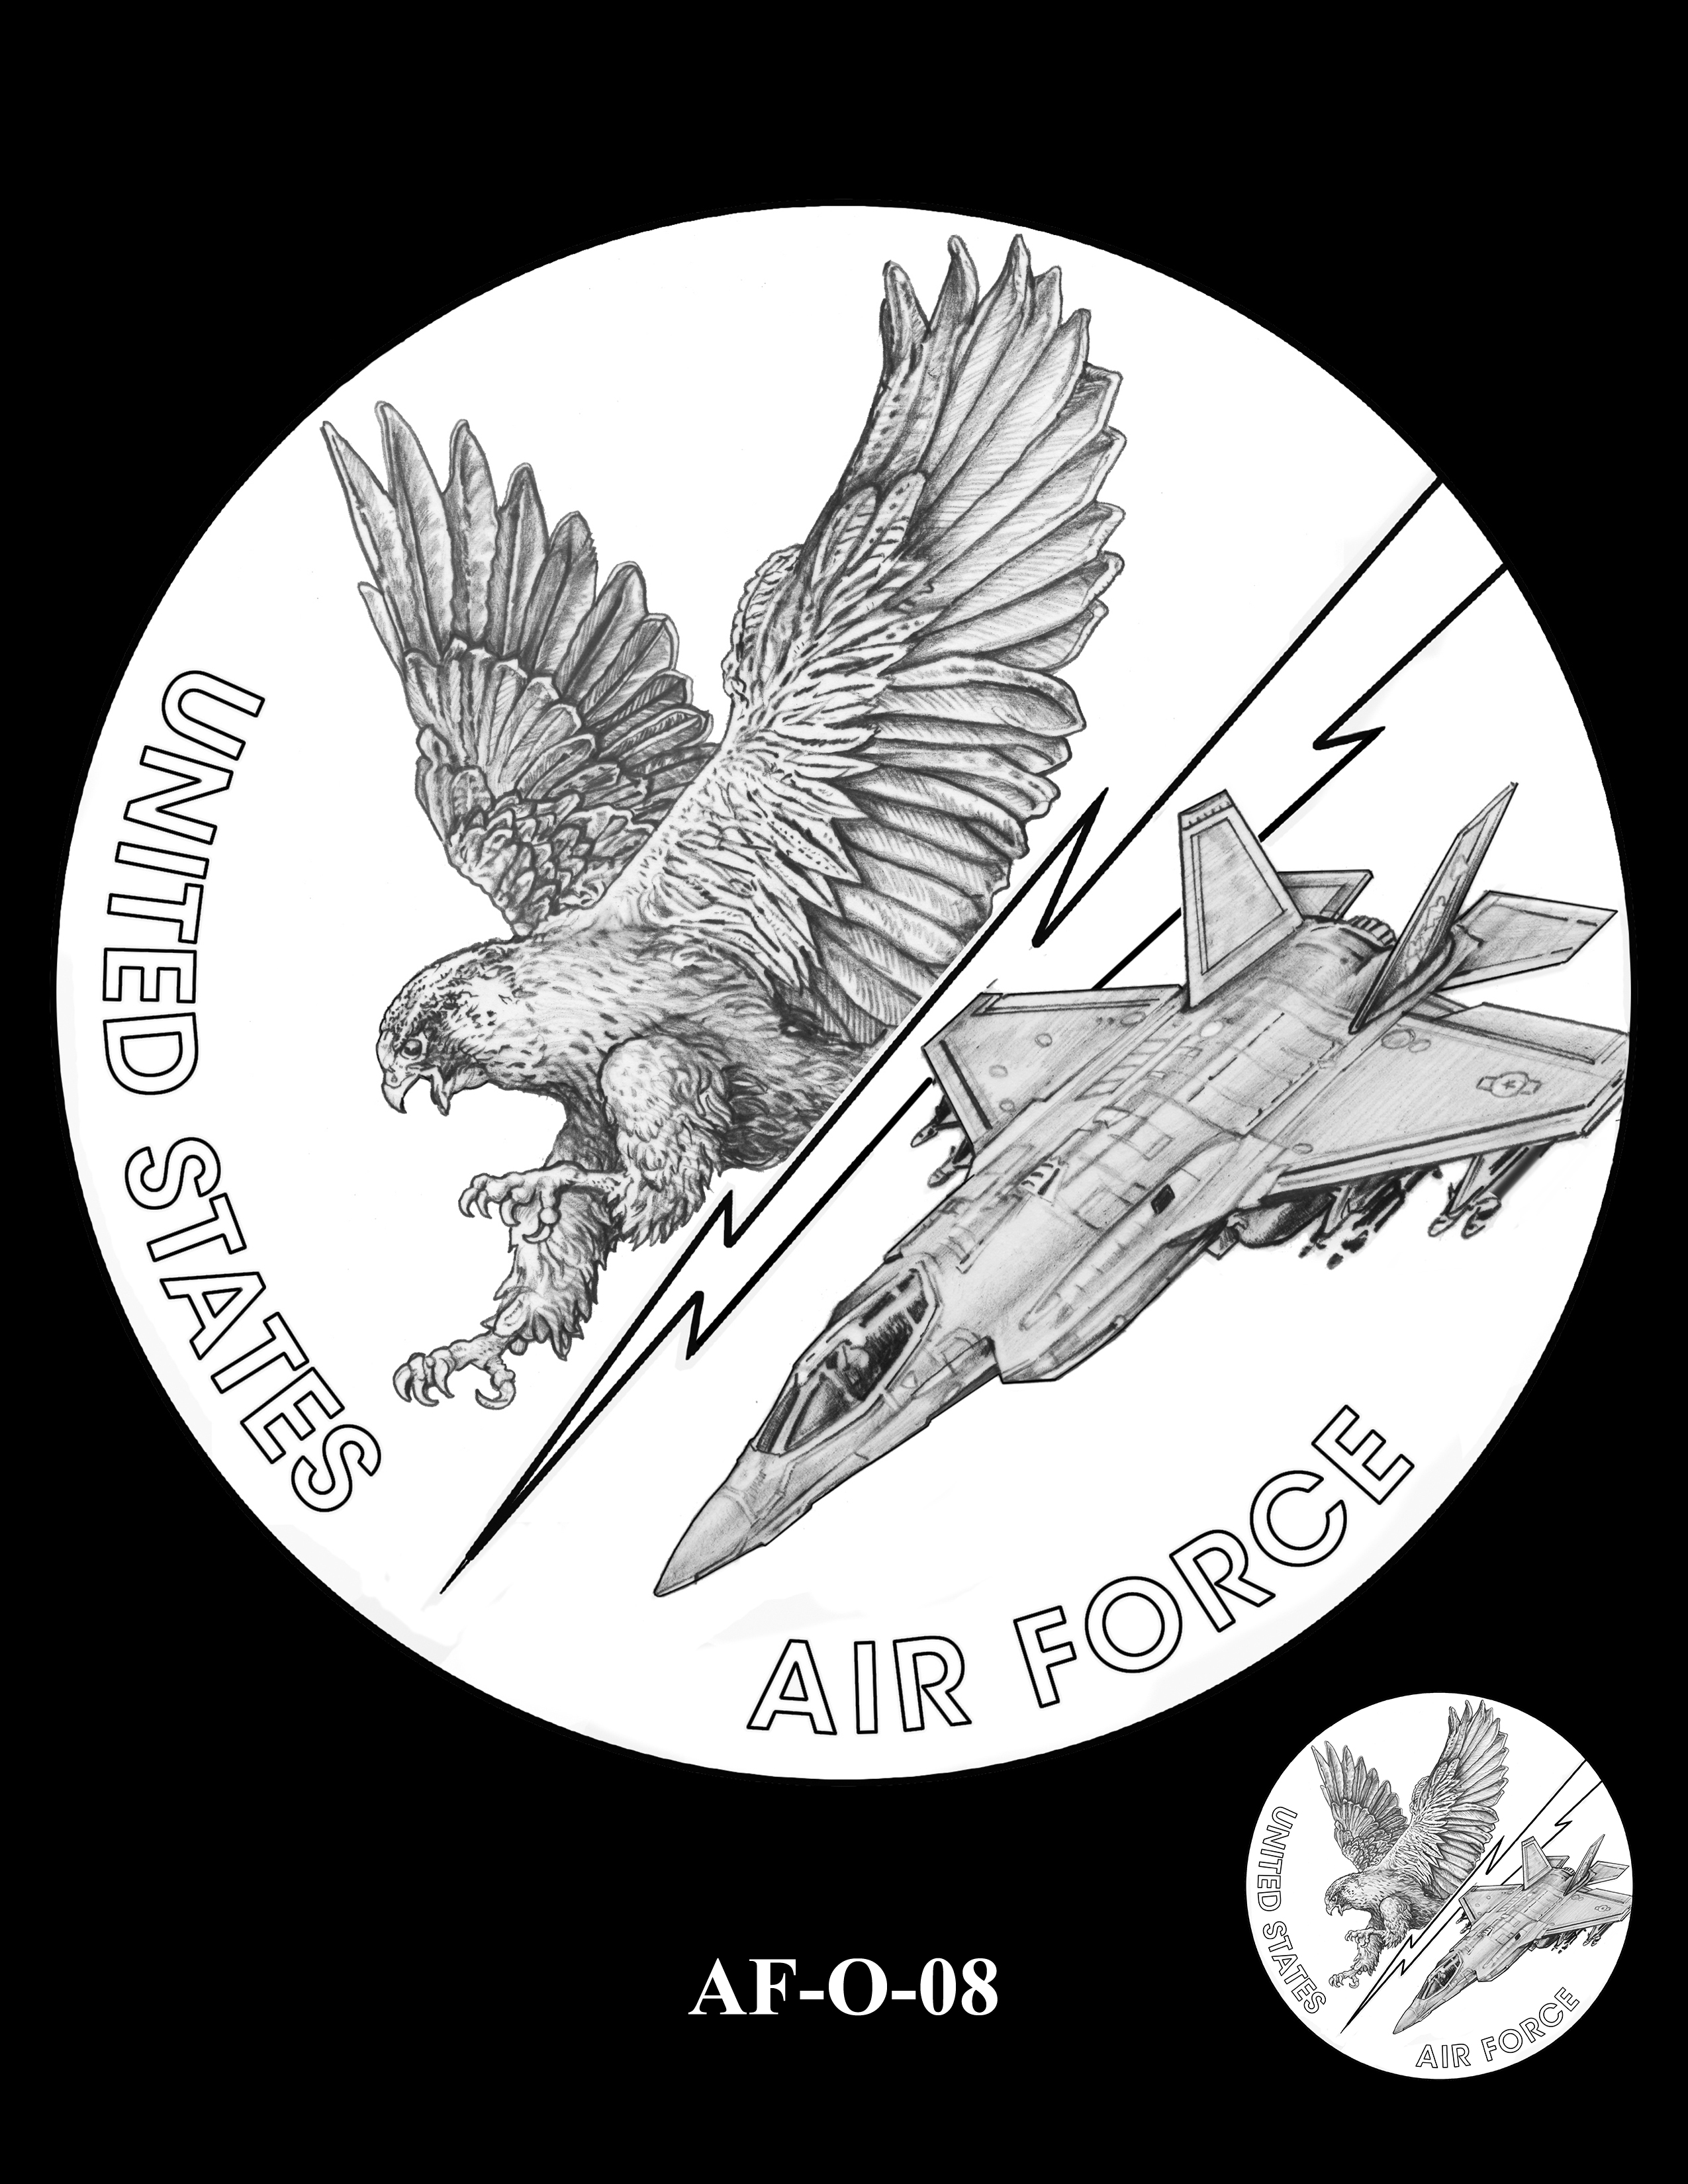 AF-O-08 -- Armed Forces Medal - Air Force